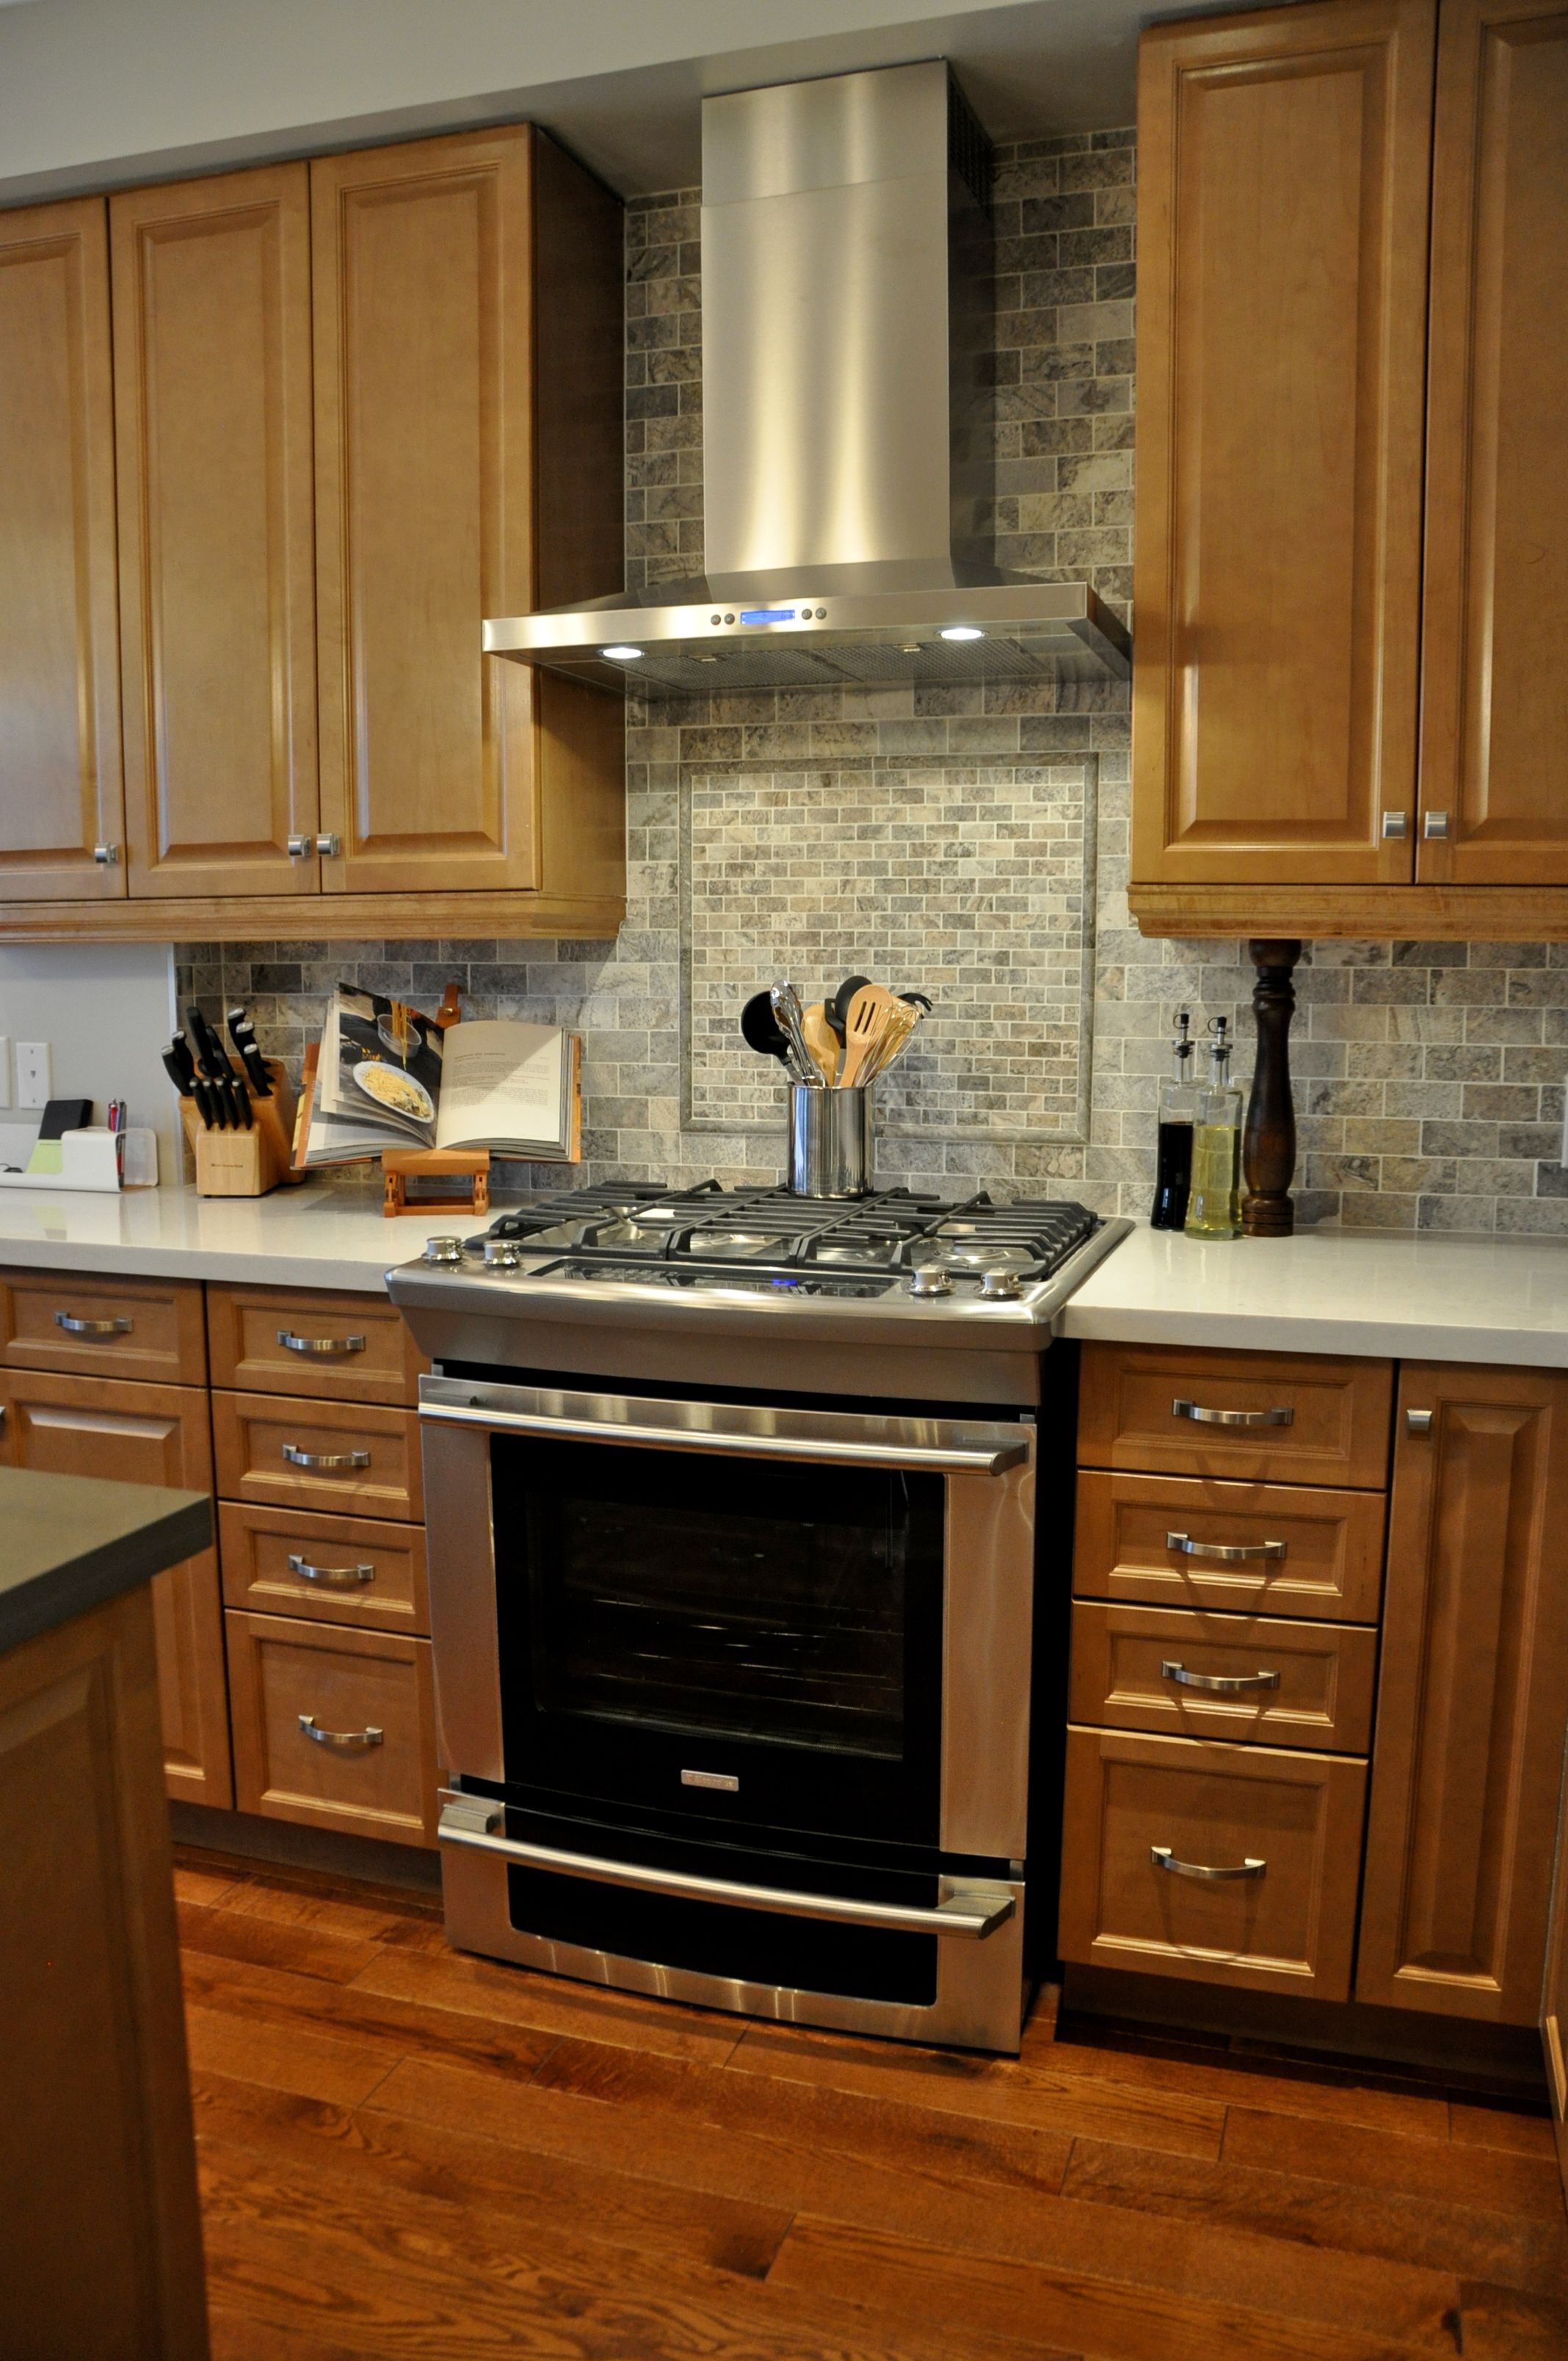 Page Not Found Brown Cabinets White Backsplash Stove Range Hood